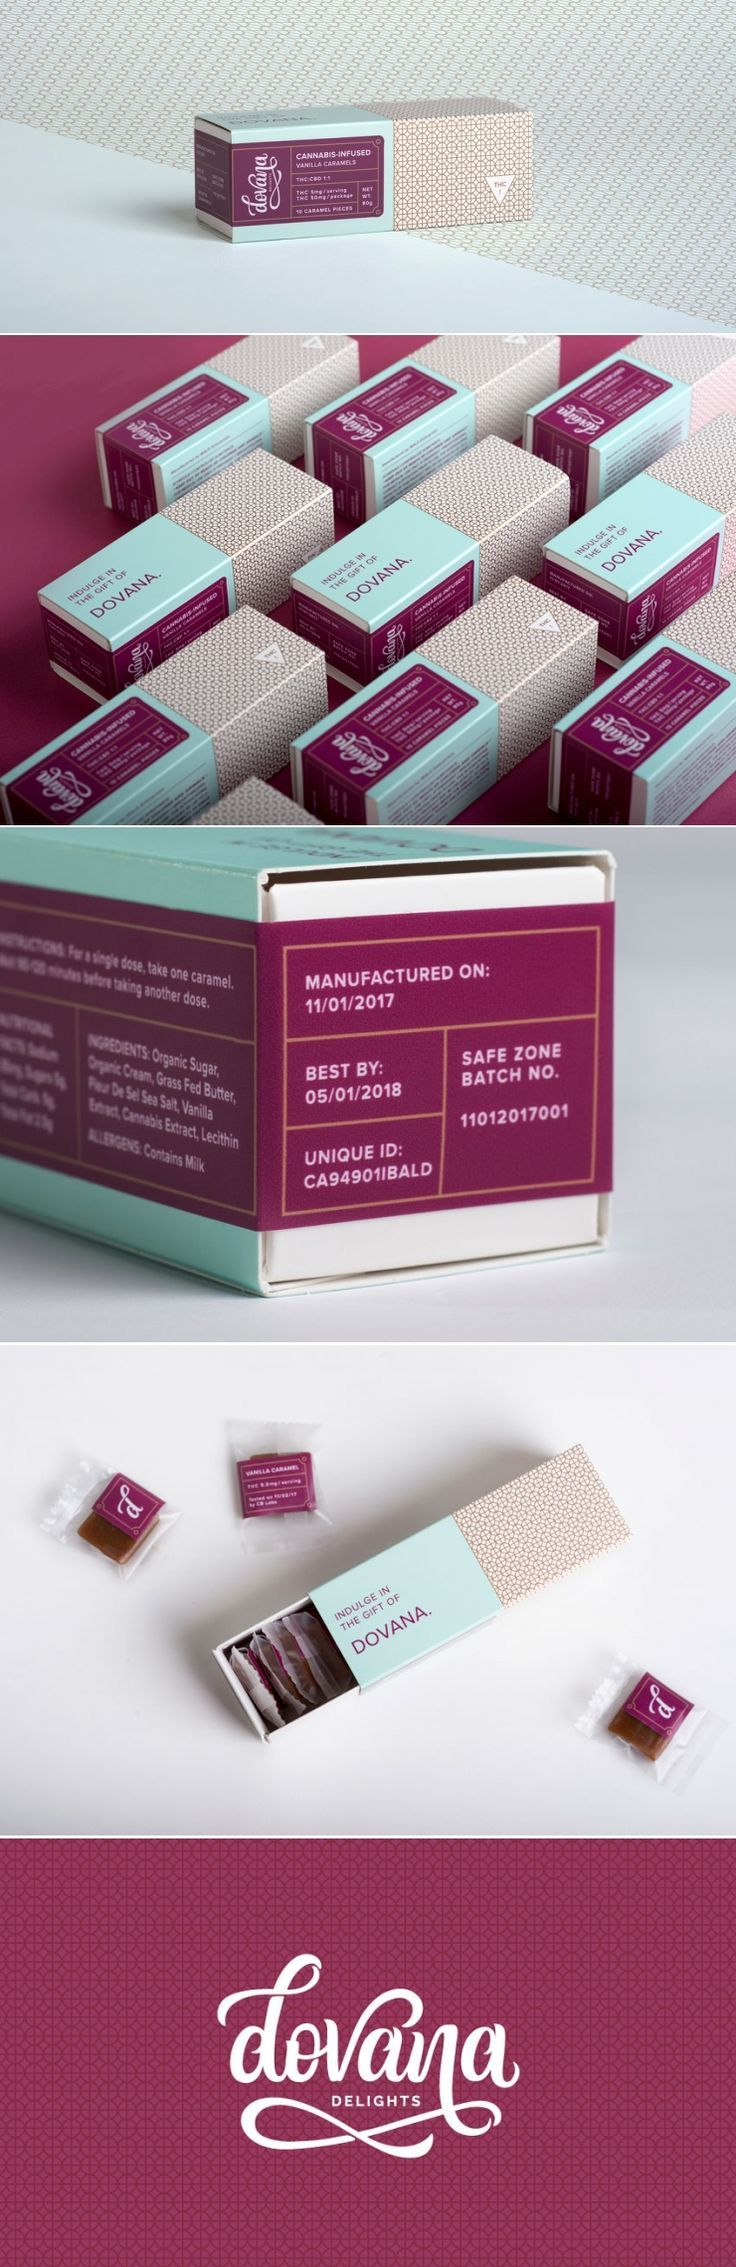 Check Out The Gorgeous Packaging For This High-End Cannabis Edible Brand — The Dieline | Packaging & Branding Design & Innovation News